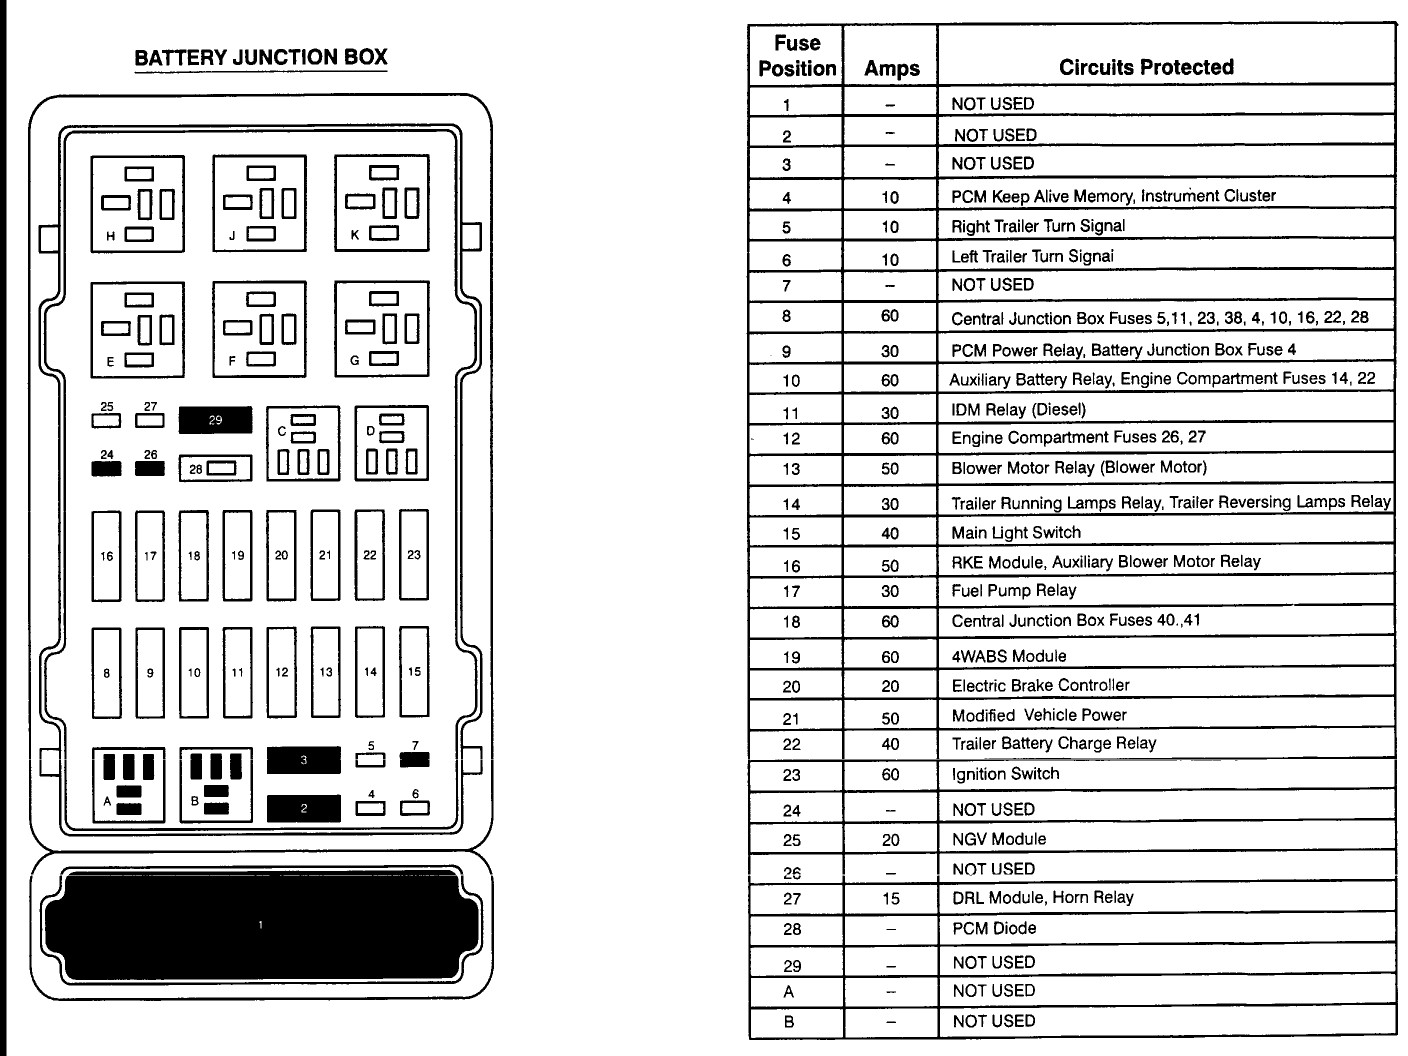 1999 ford e250 van fuse box diagram - toyota corolla 2006 fuse box radio  for wiring diagram schematics  wiring diagram schematics